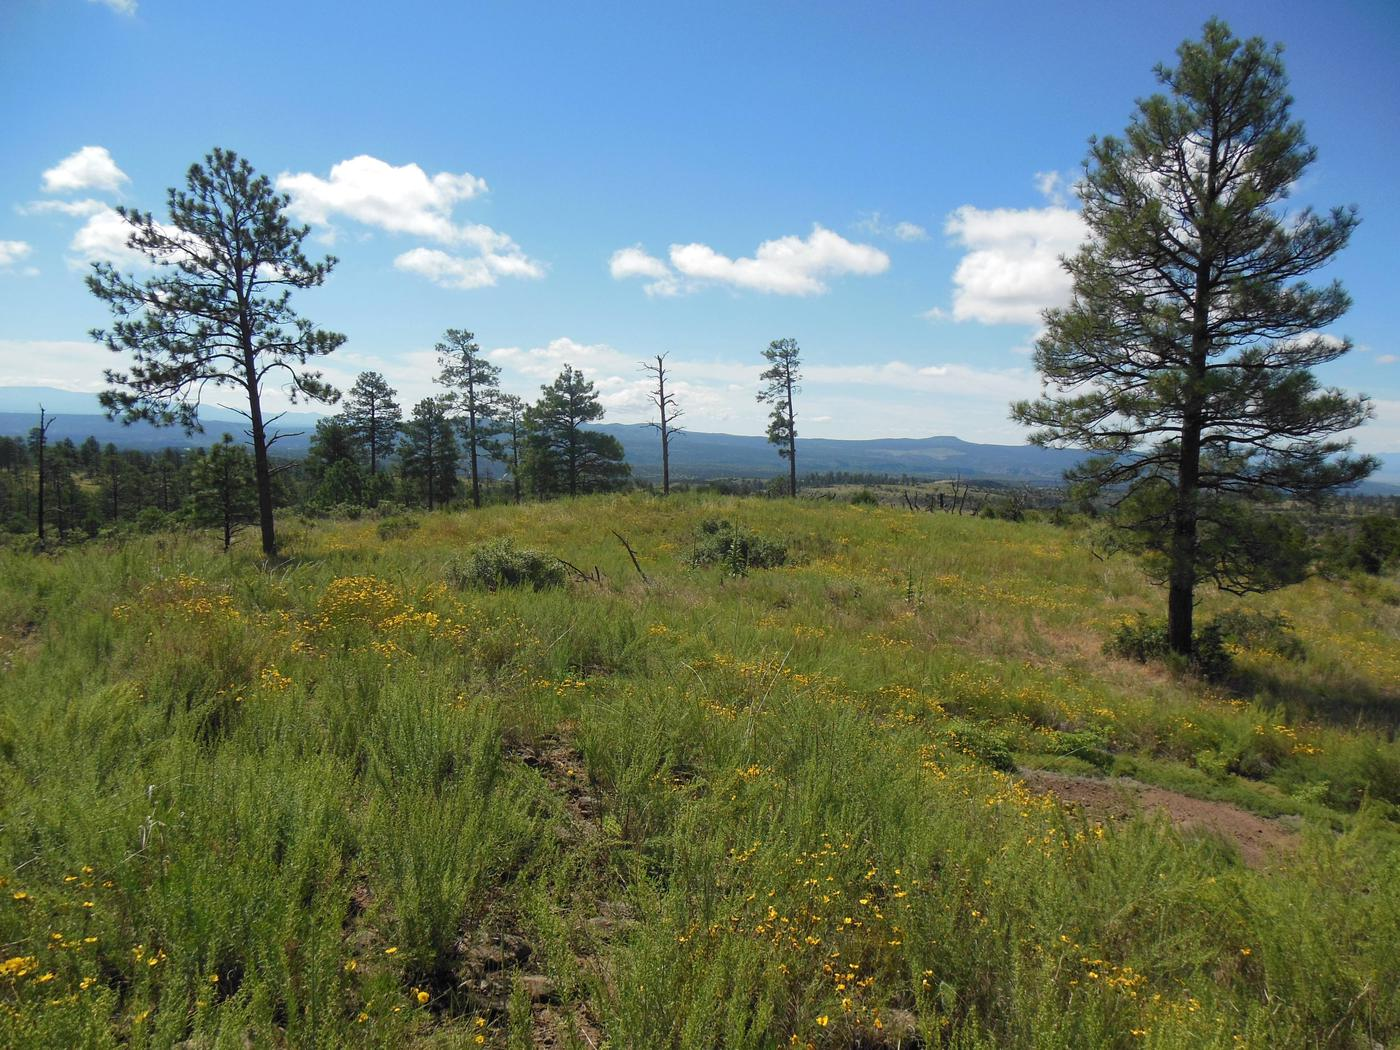 Mountain meadow with blooming flowers and scattered pinesPonderosa Group Campground is a short drive from other park trailheads where hikers can experience the high-country at Bandelier.